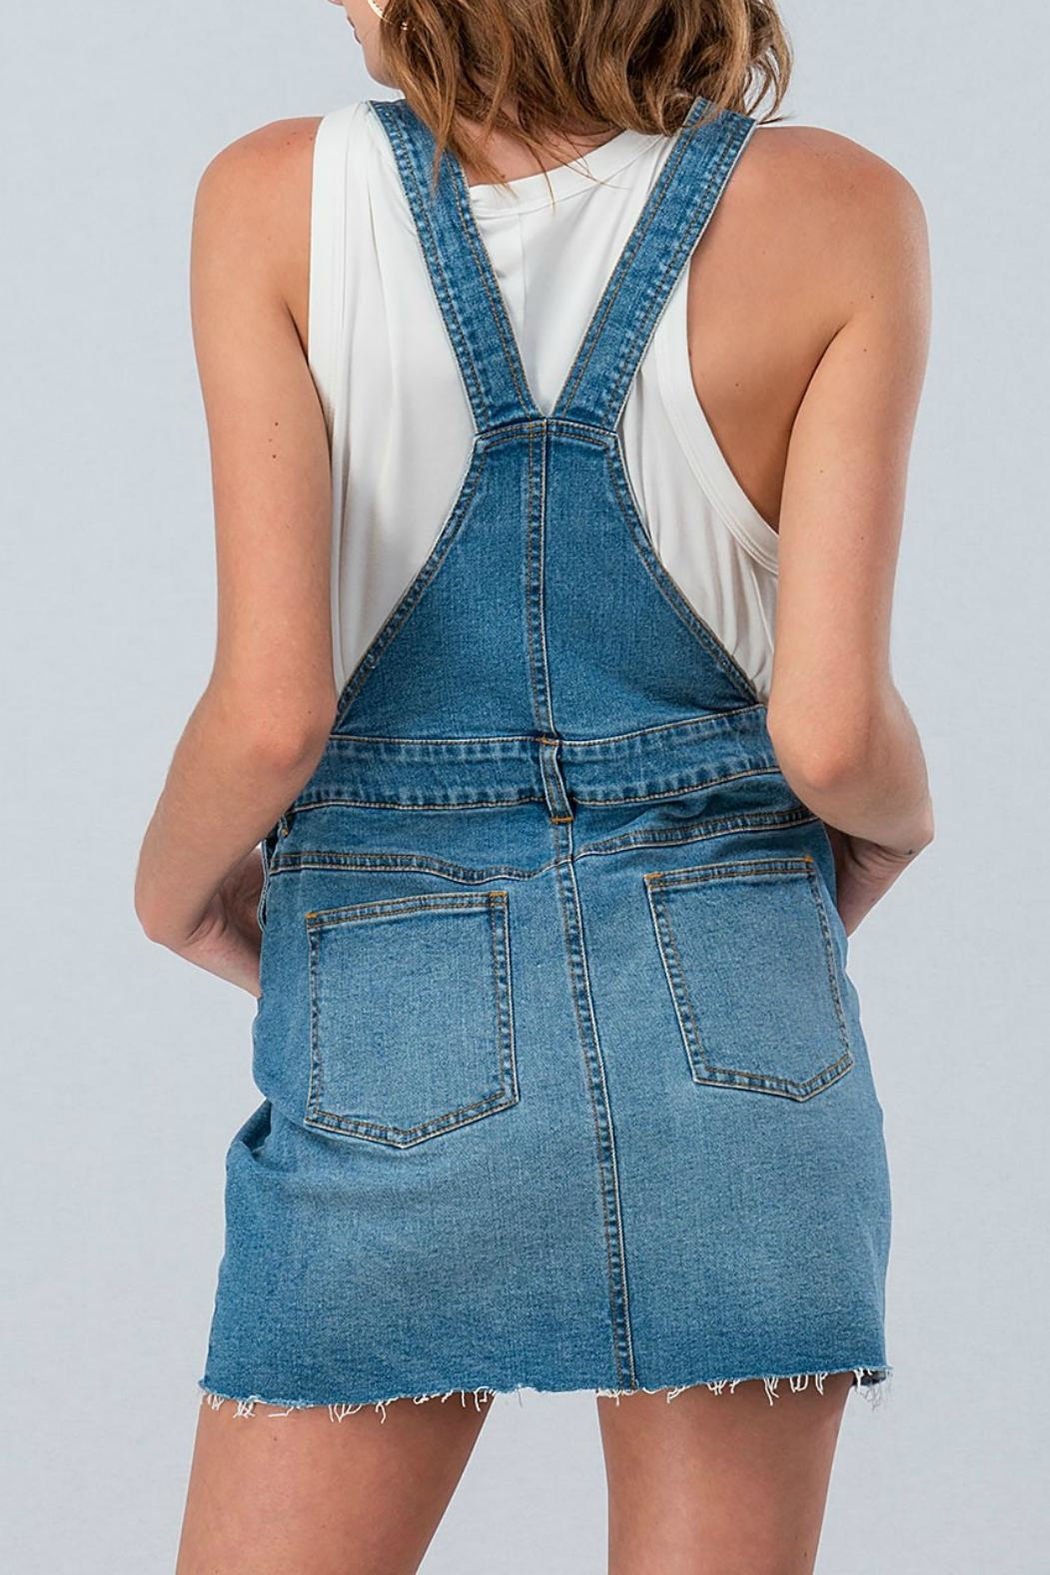 Pretty Little Things Denim Overall Dress - Front Full Image